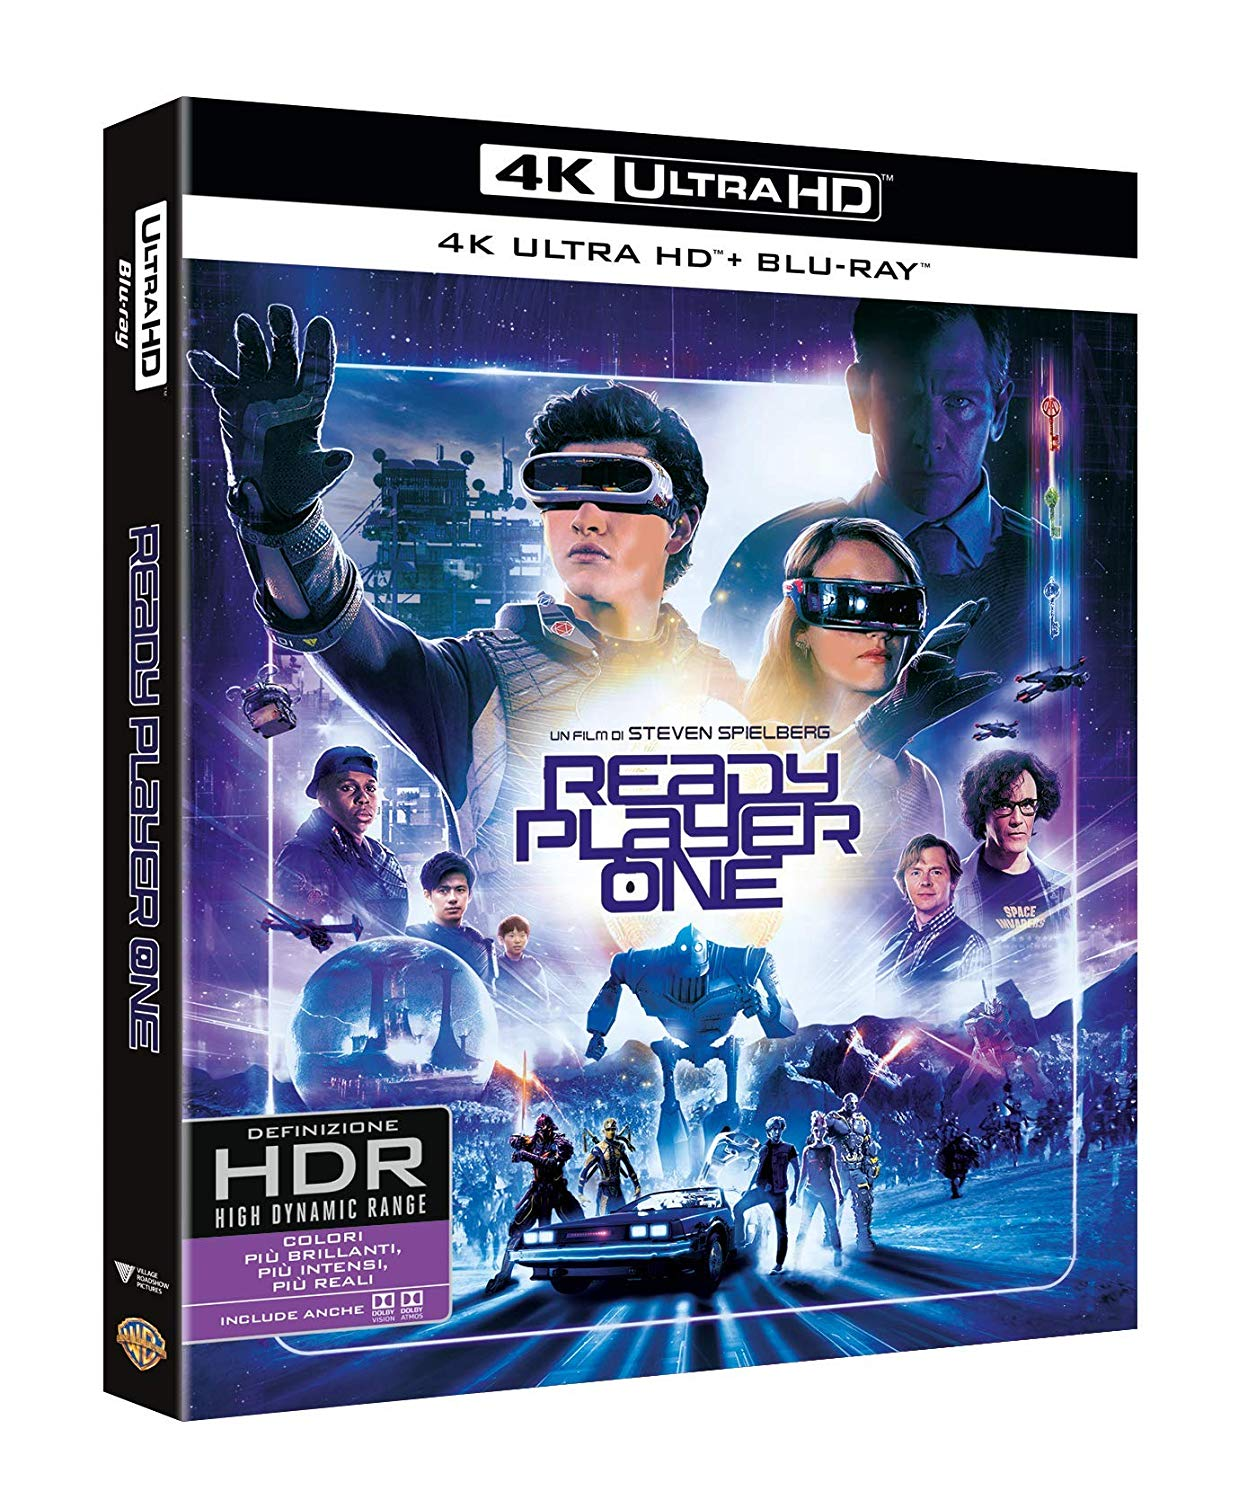 READY PLAYER ONE (4K UHD+BLU-RAY)